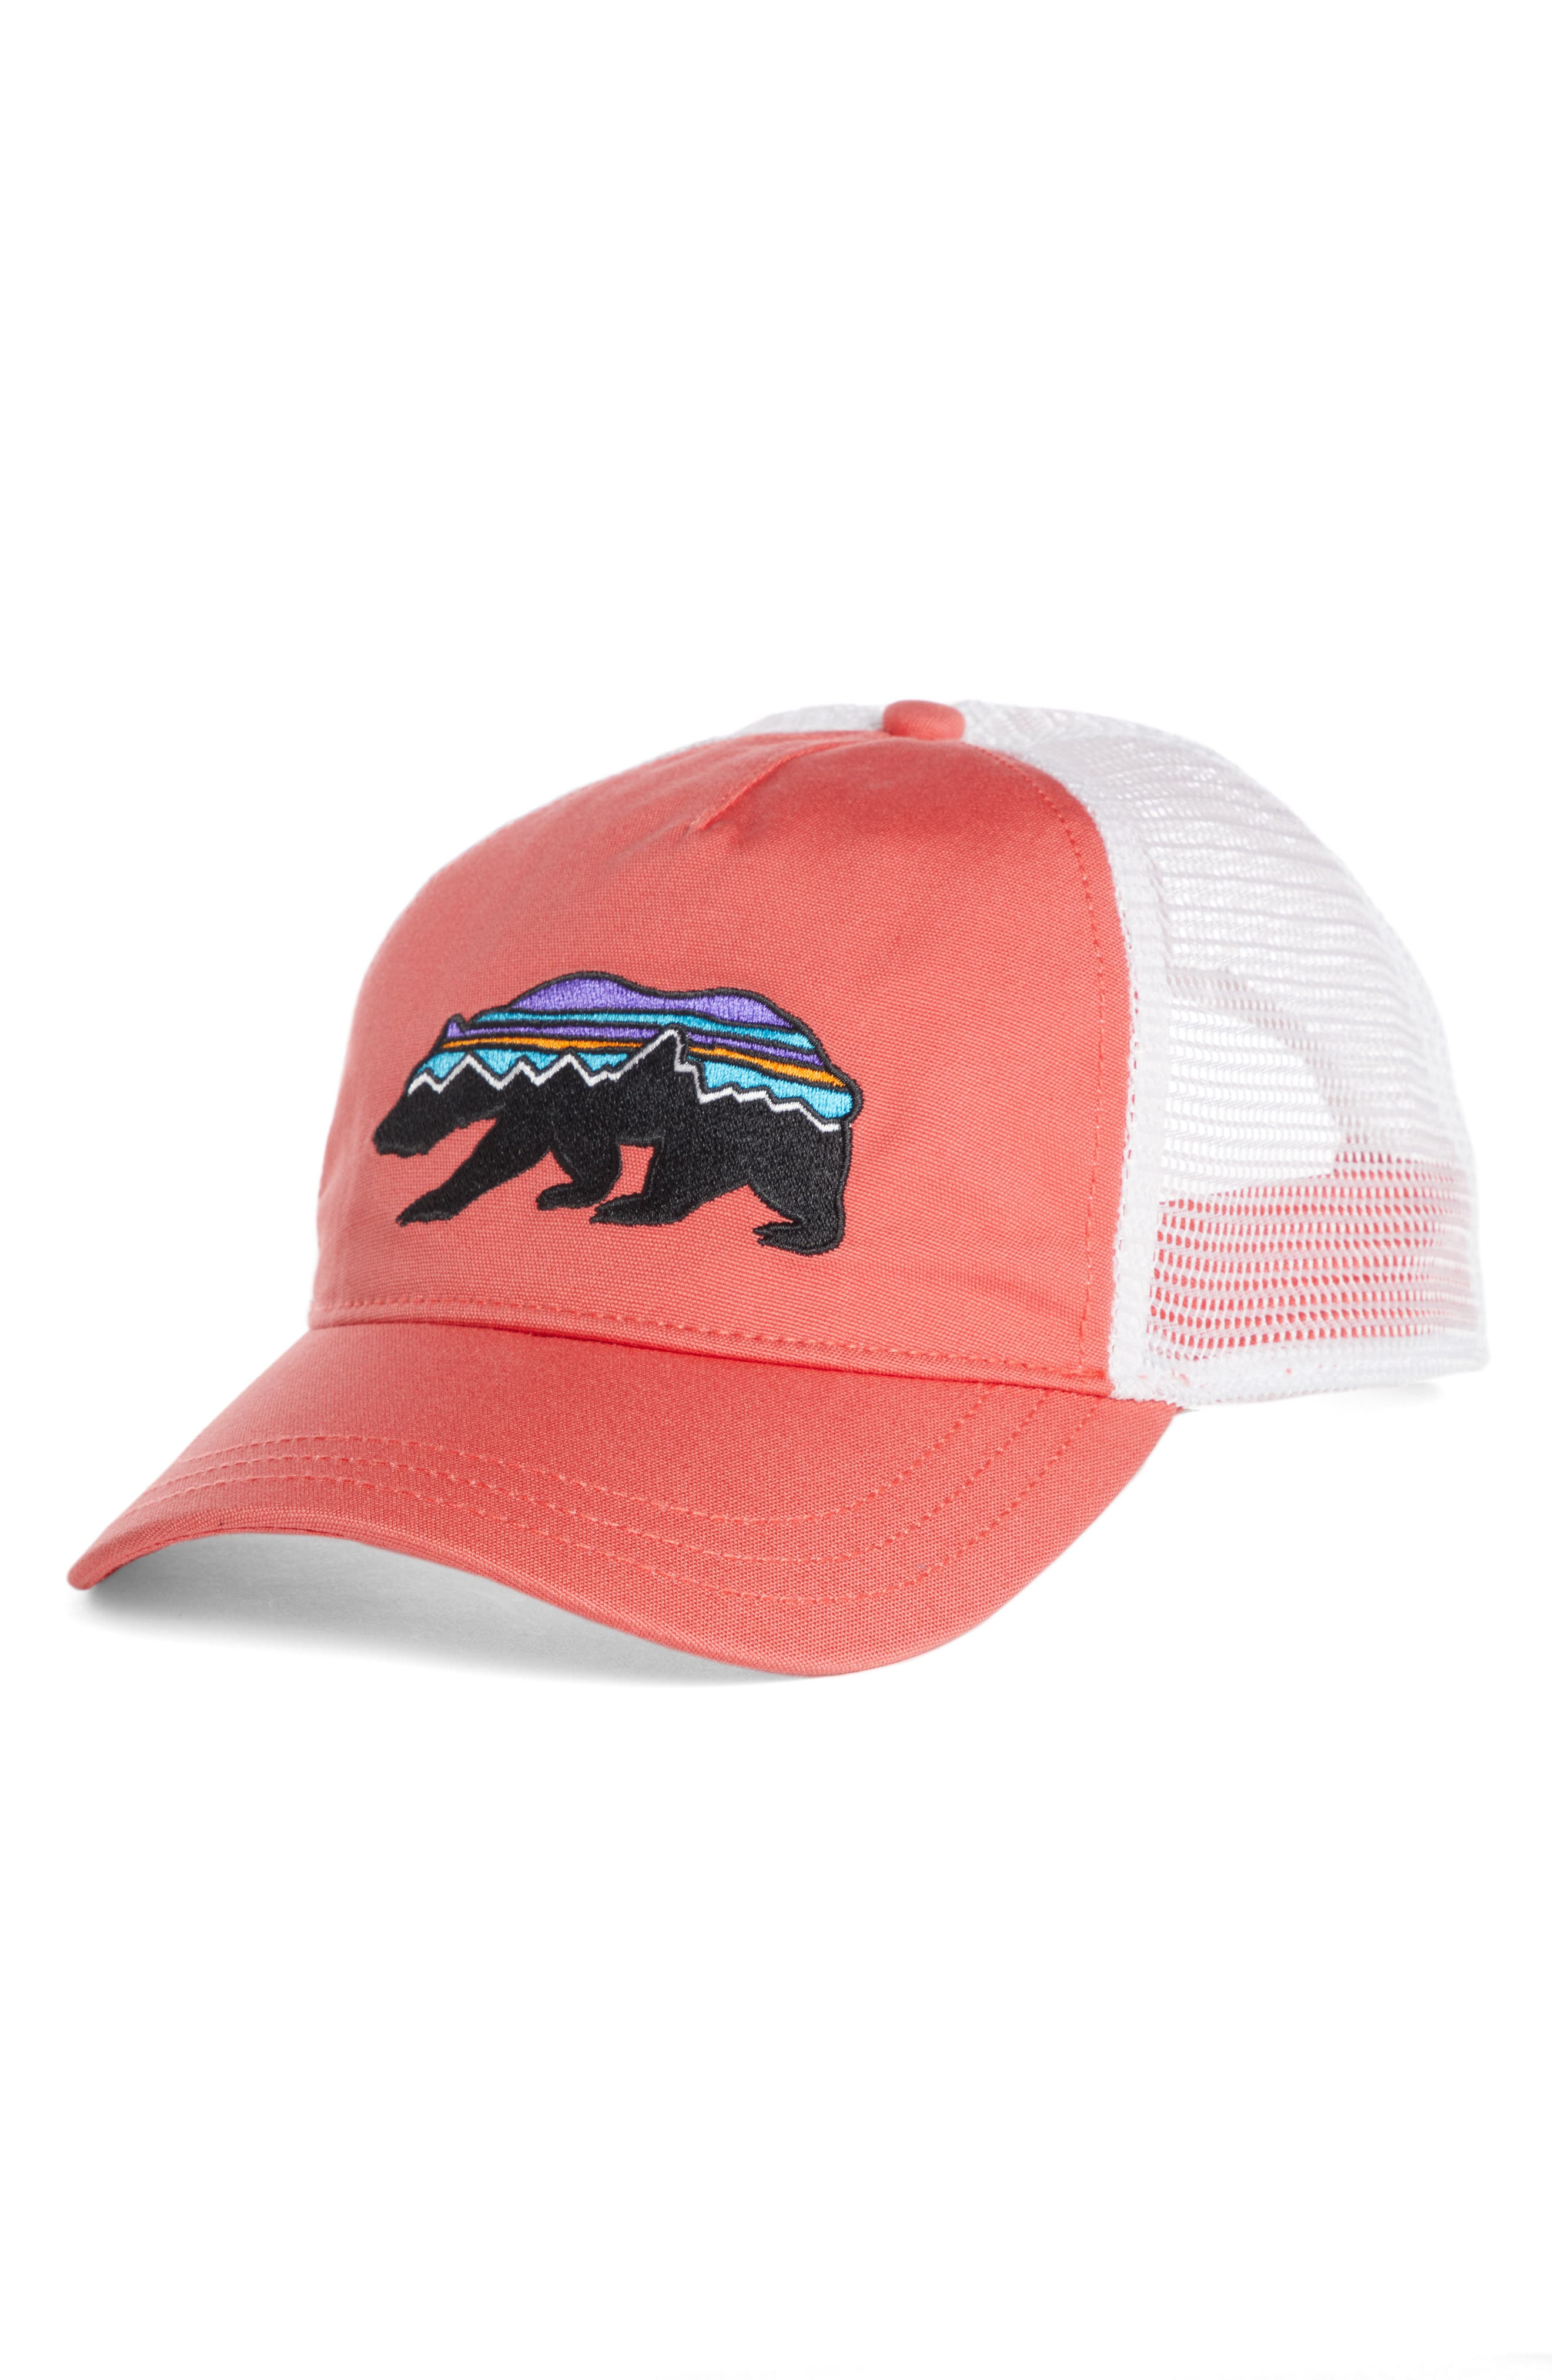 Fitz Roy Bear Trucker Hat,                         Main,                         color, Spiced Coral